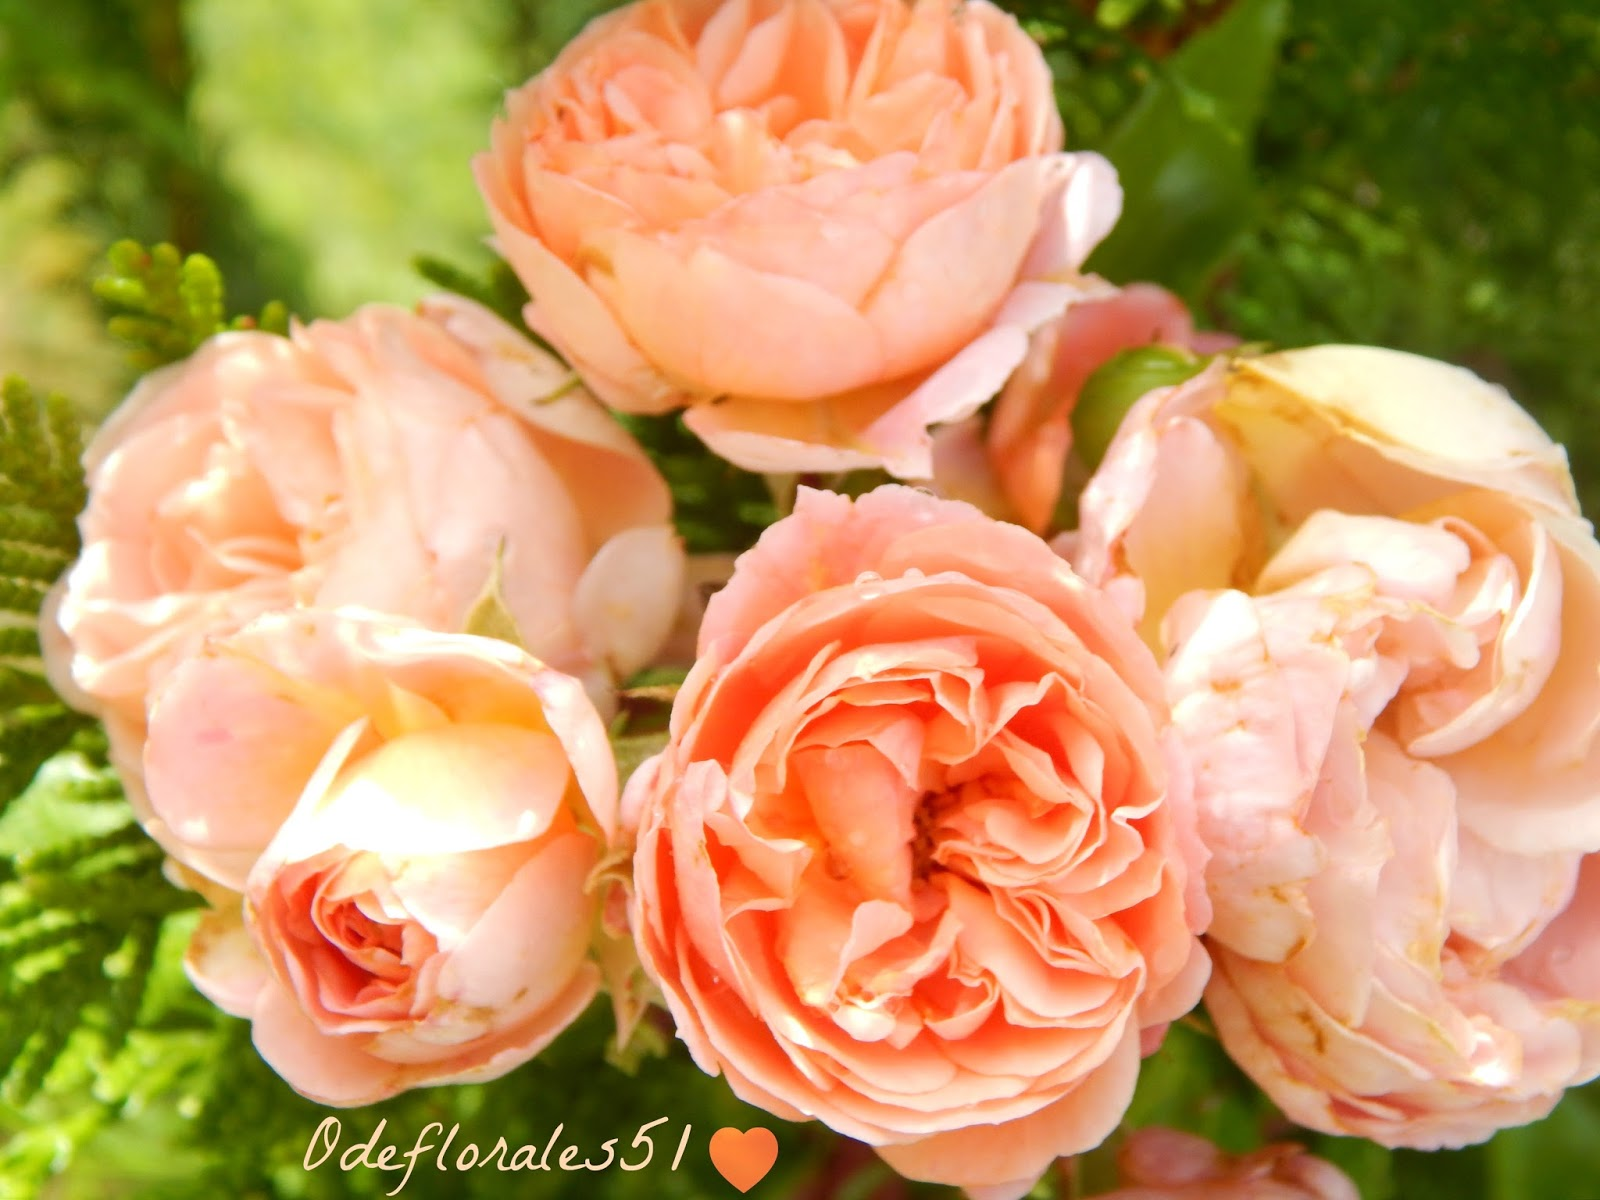 Beaut s florales rosier may flower - Taille rosier buisson ...